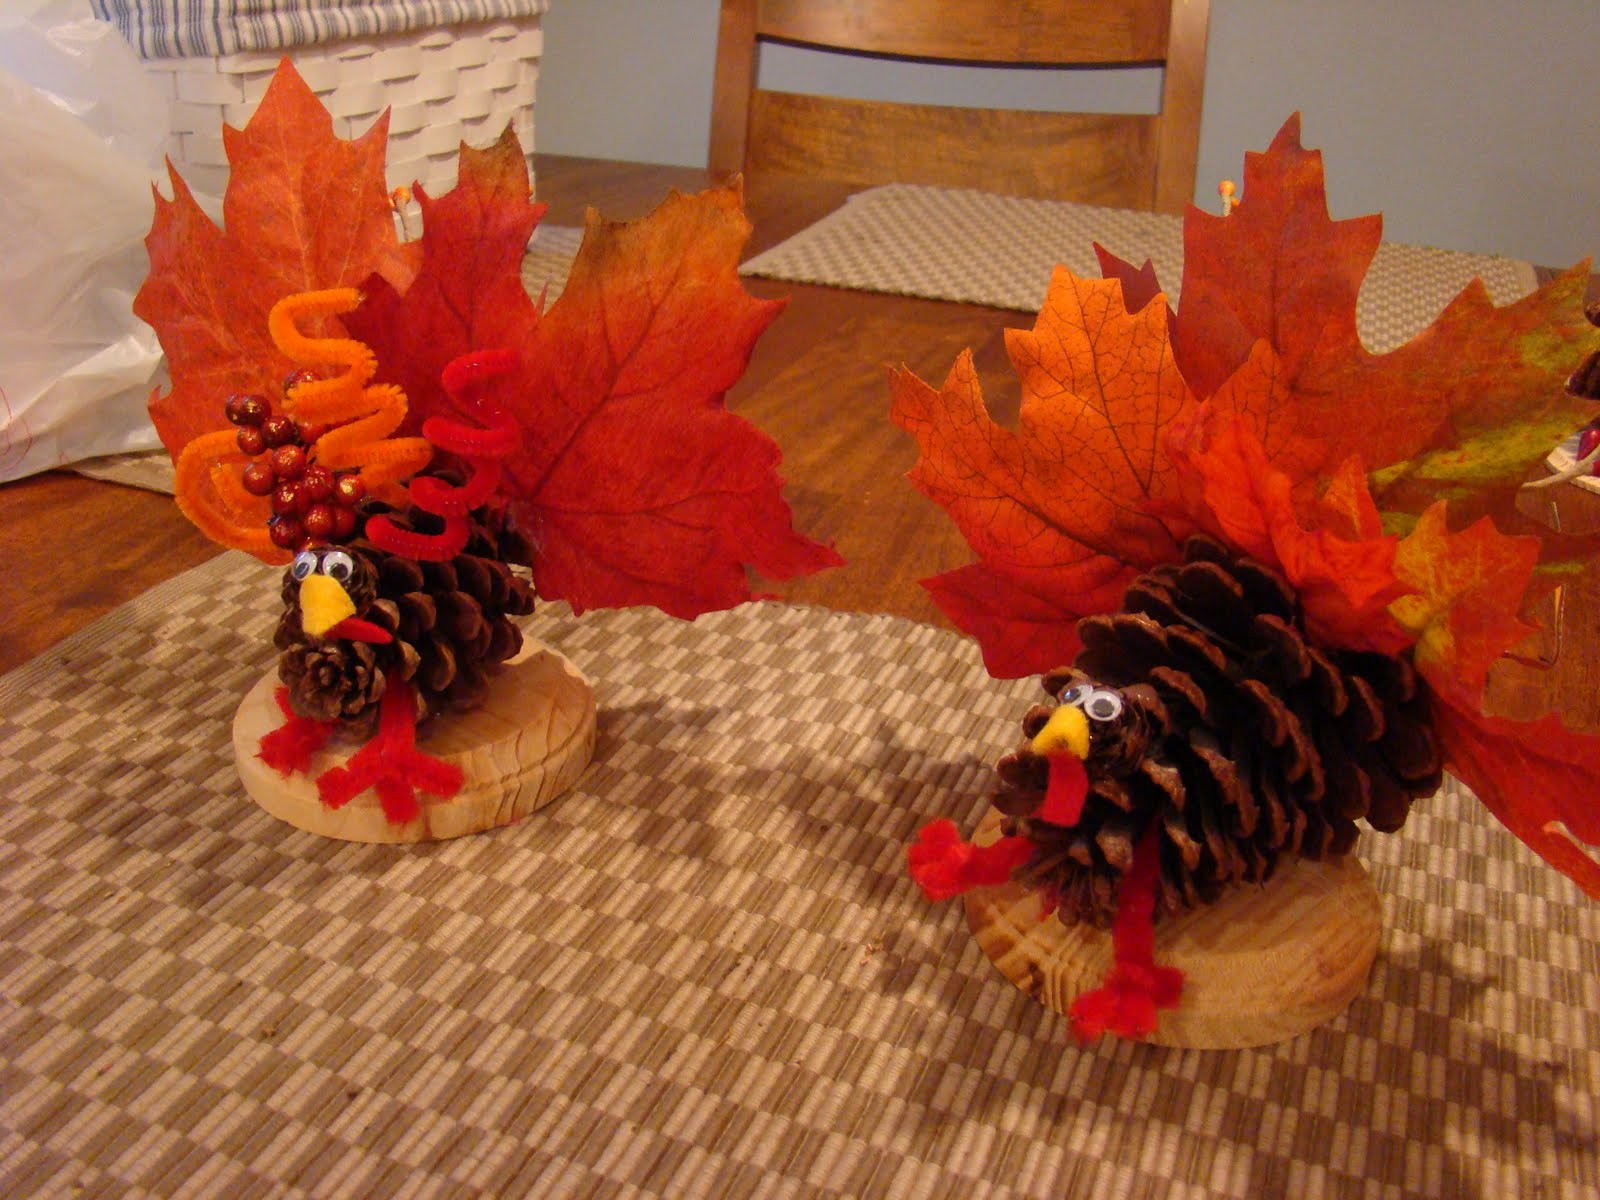 These pine cone turkeys are just one of the adorable Thanksgiving turkey crafts you can make with leaves. Click to find links and instructions for them all.